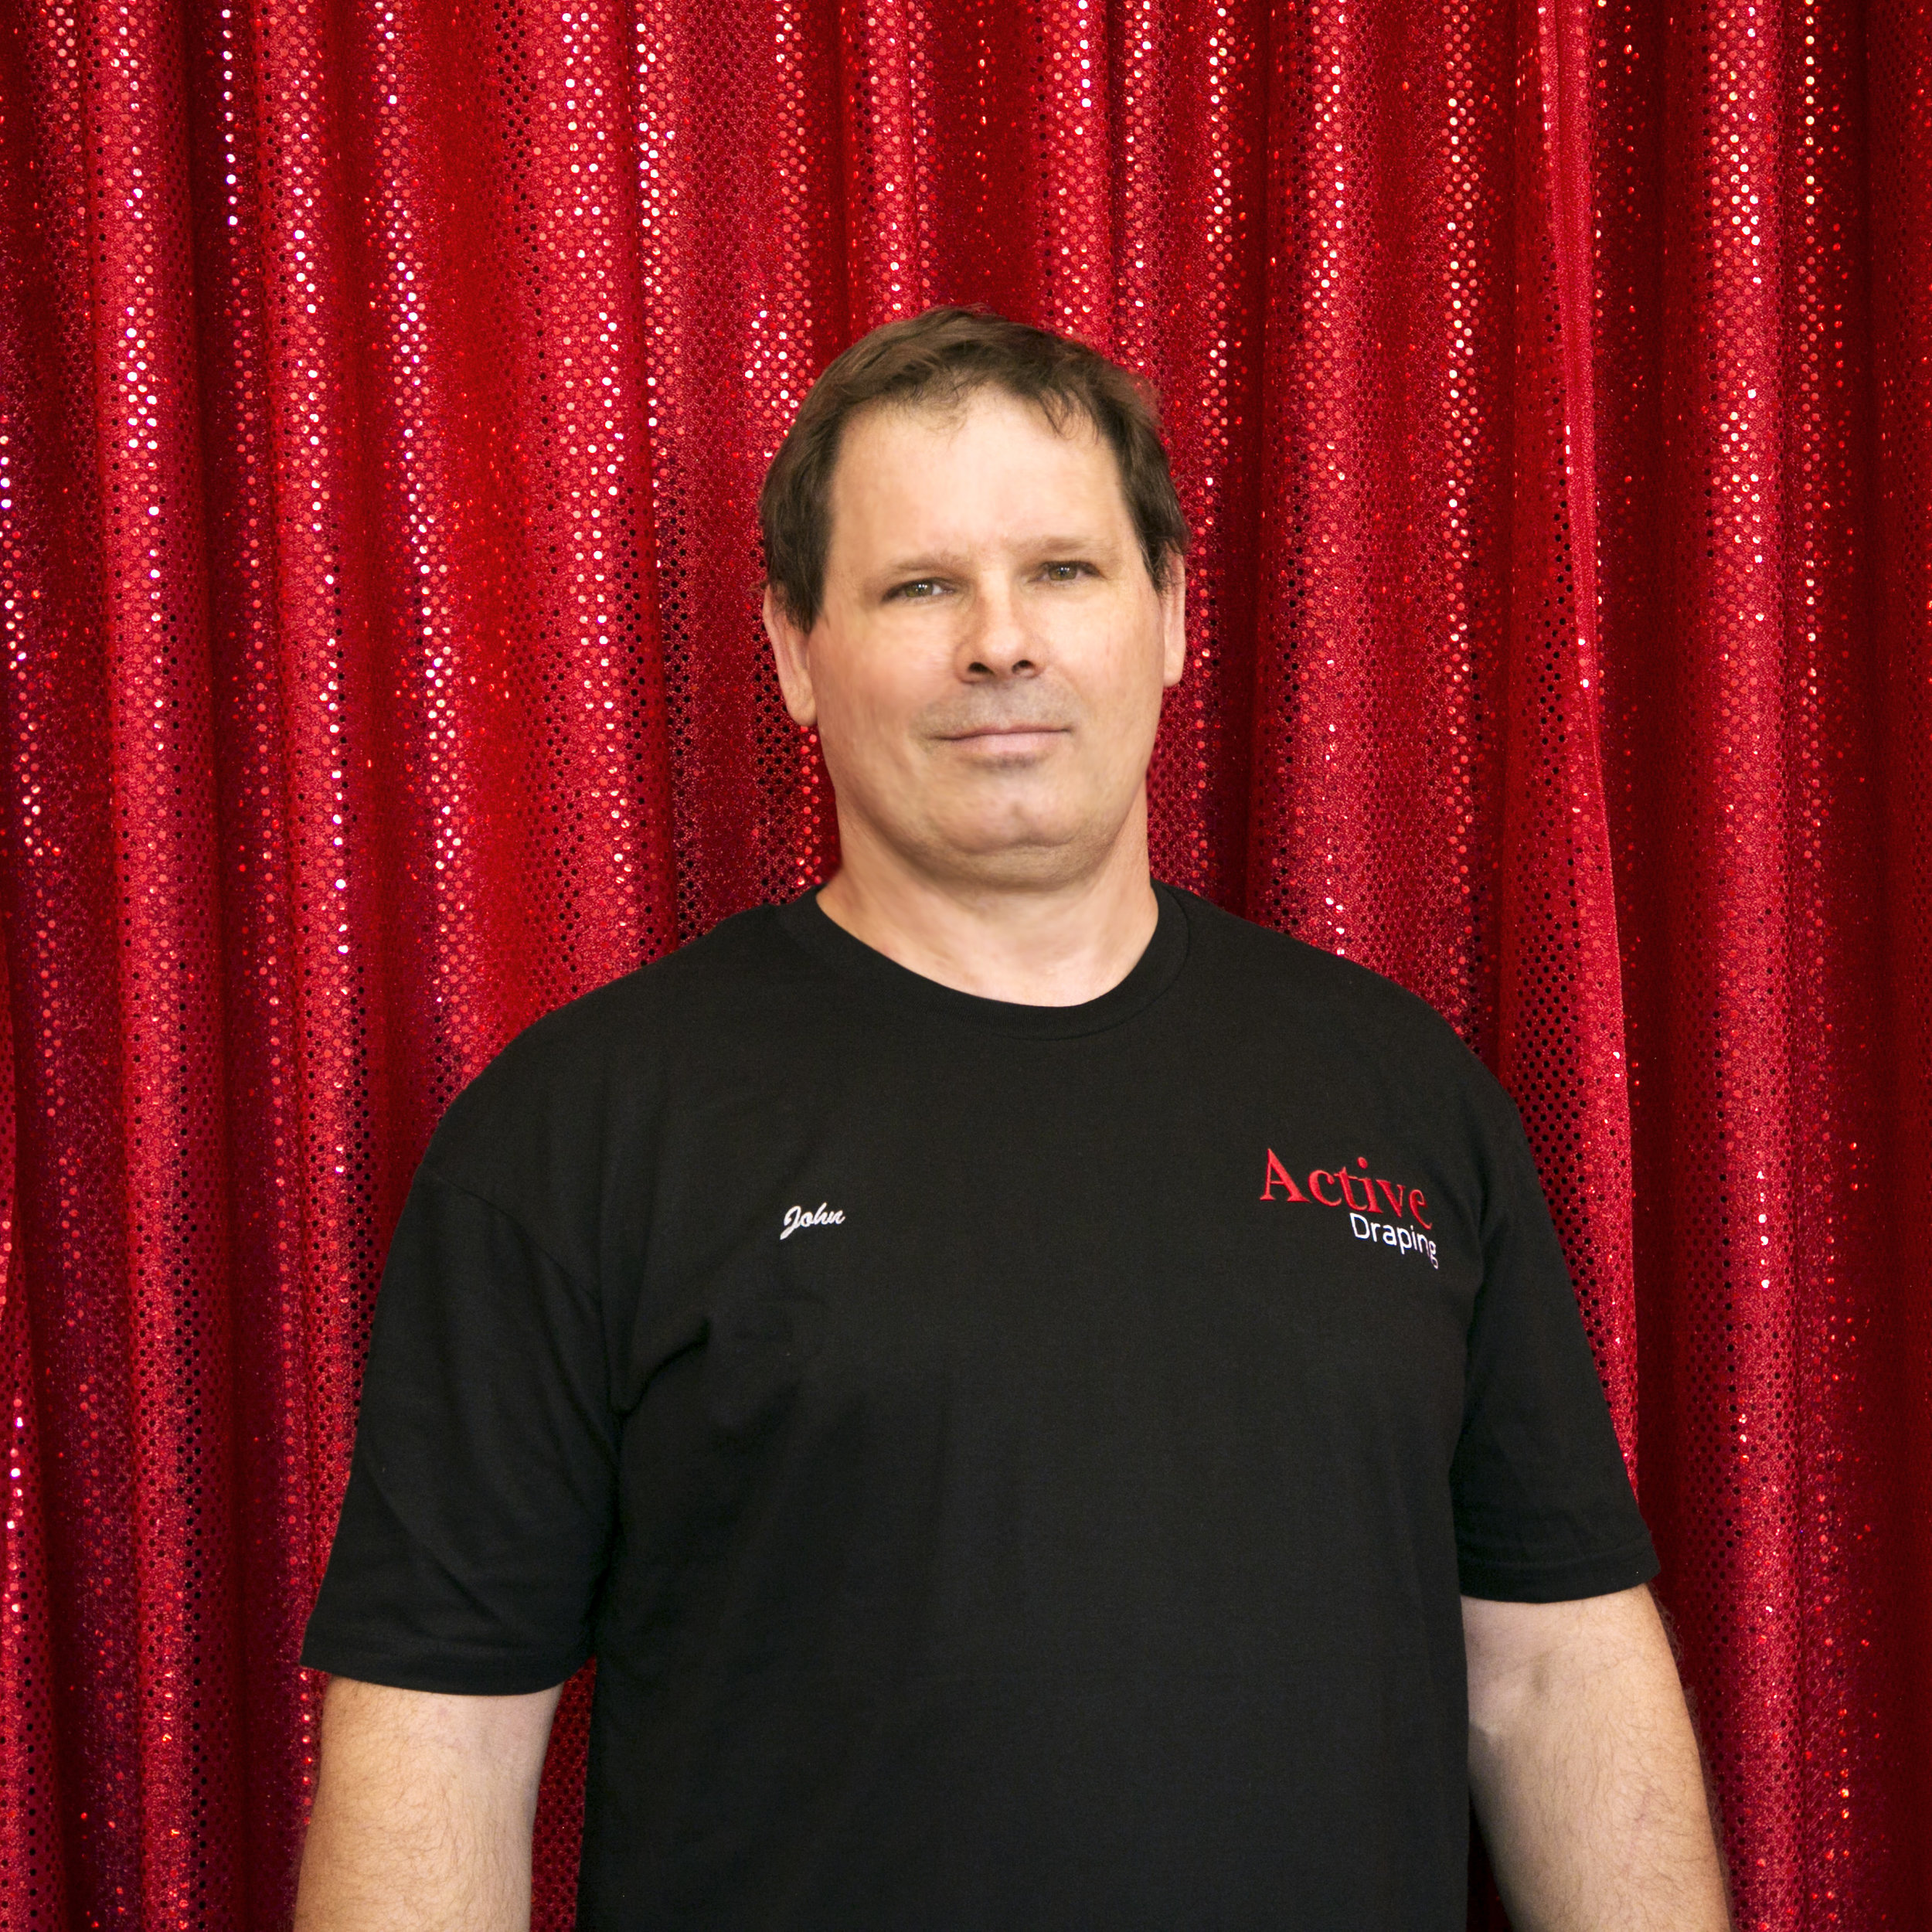 John Adams - John is our leading man. He's pretty much seen & done it all & is the go-to-guy if you need to get the job done and done very well. He has qualifications up to wazoo and has 30 years in this industry. He is our design King.